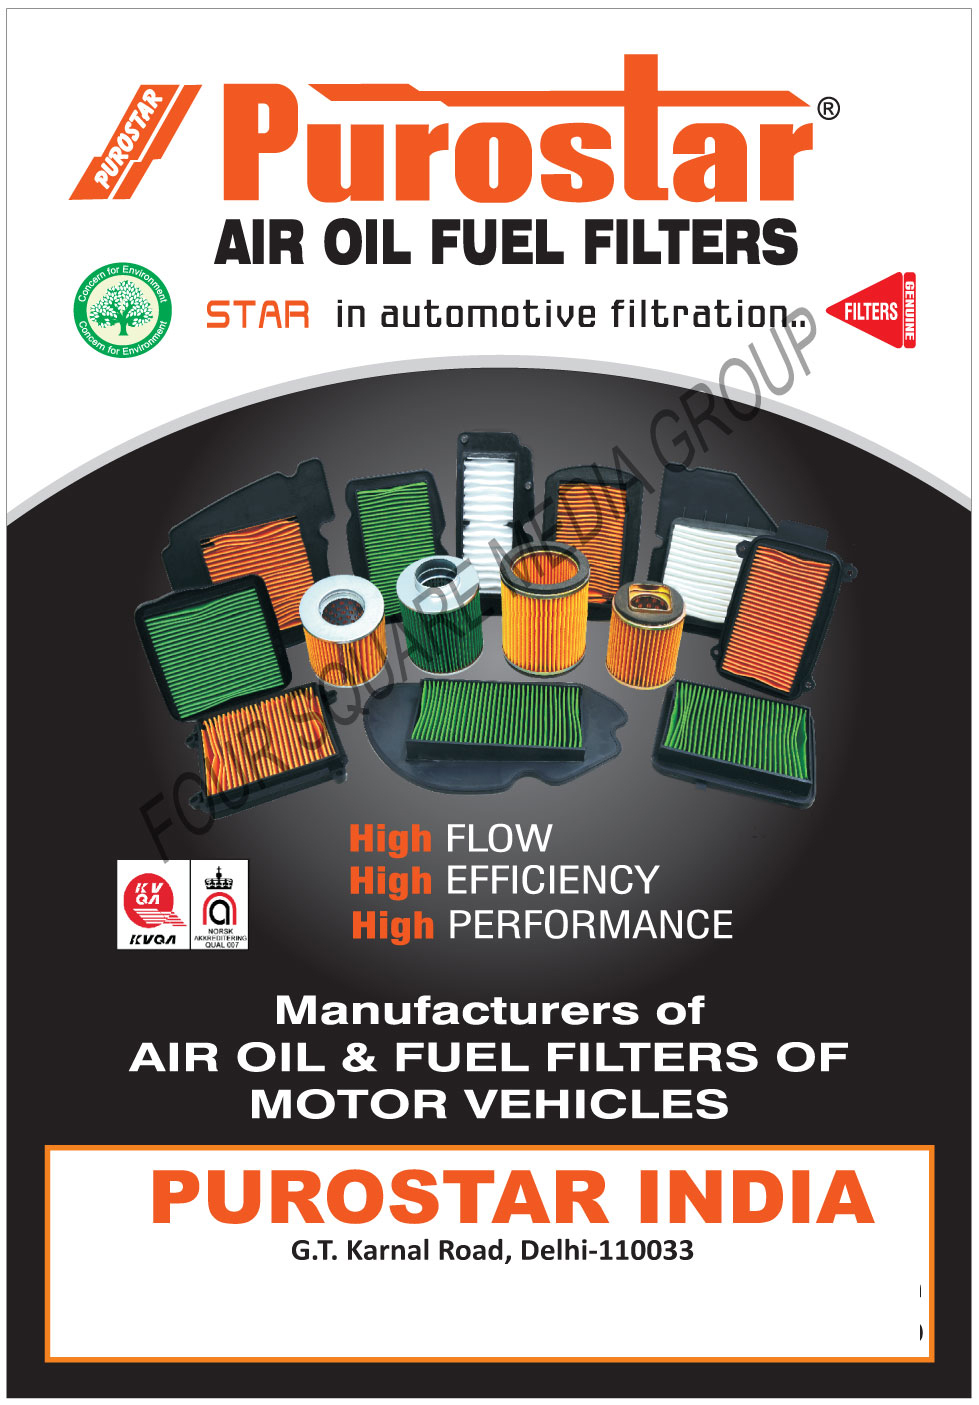 Automotive Filters, Air Oil Filters, Air Fuel Filters